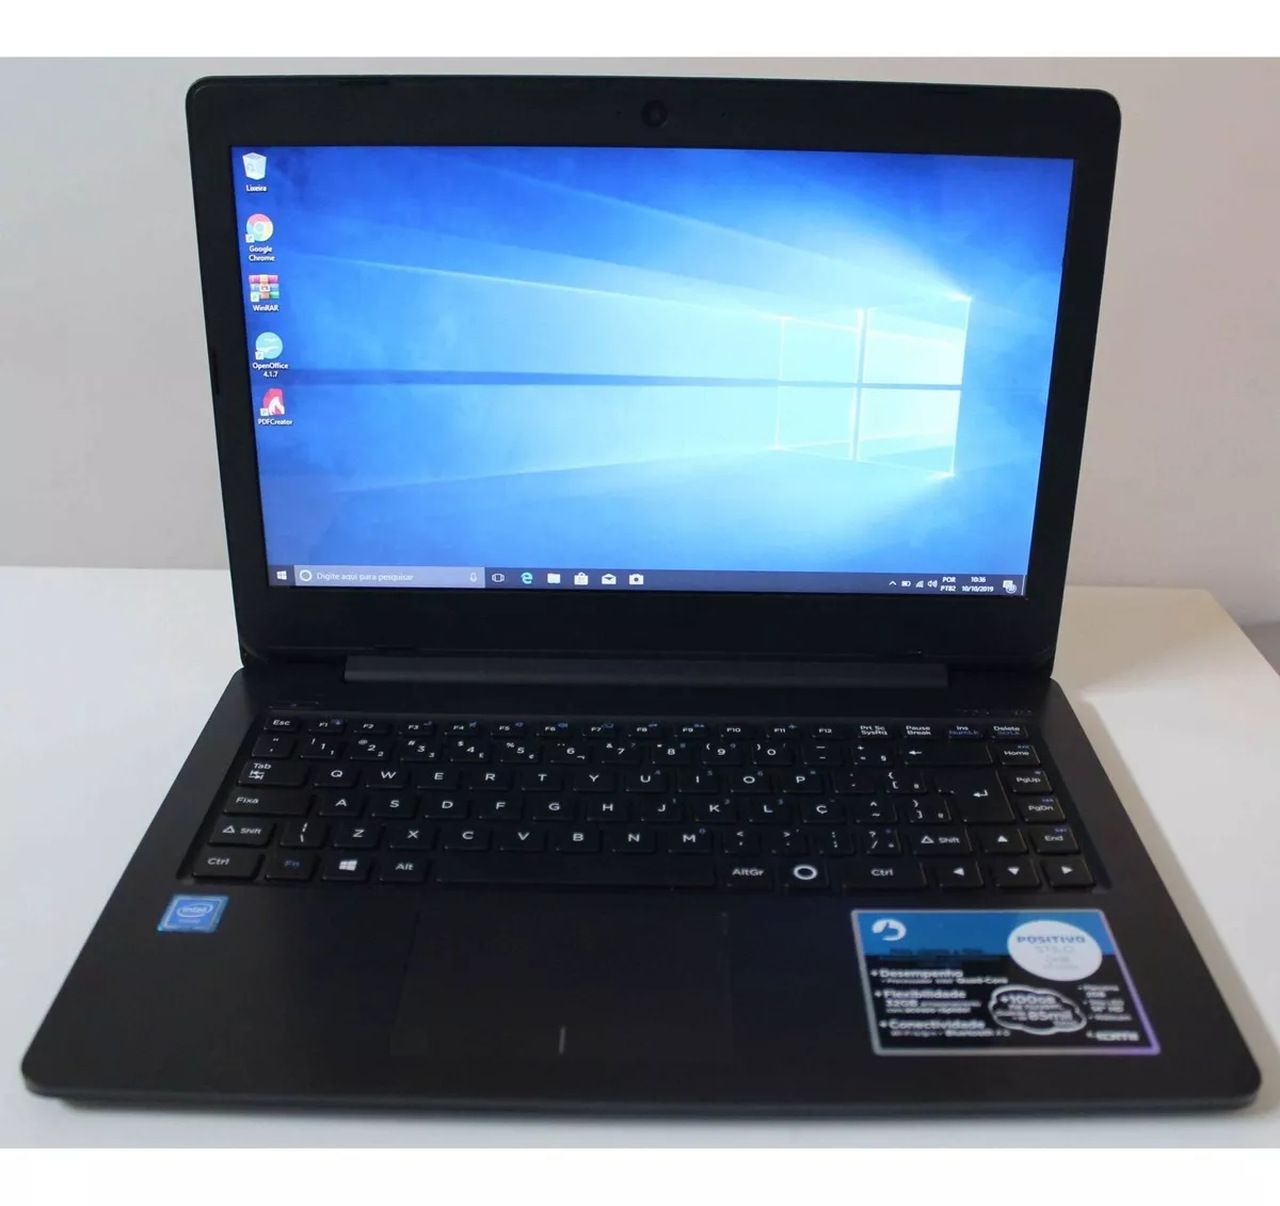 "Notebook Positivo Stilo One Xc3550 14"" Intel Atom1.44GHz 2GB HD-32GB"